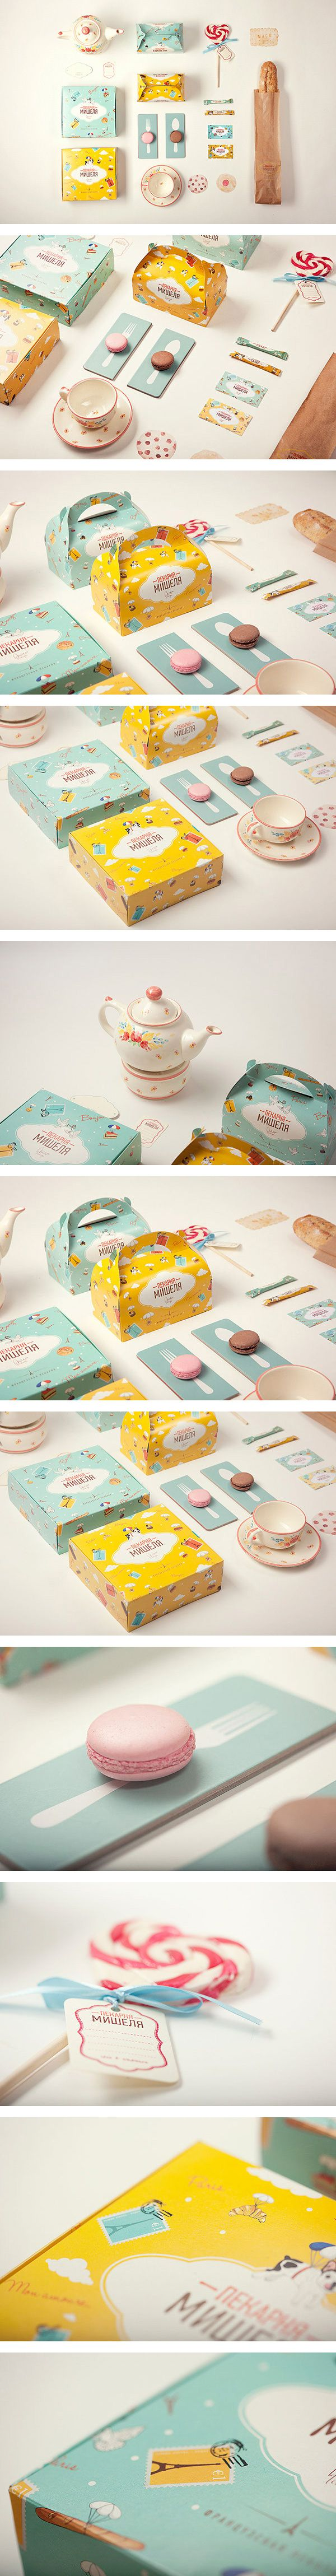 Sweet Michelle's Bakery tea and cakes #packaging PD #design